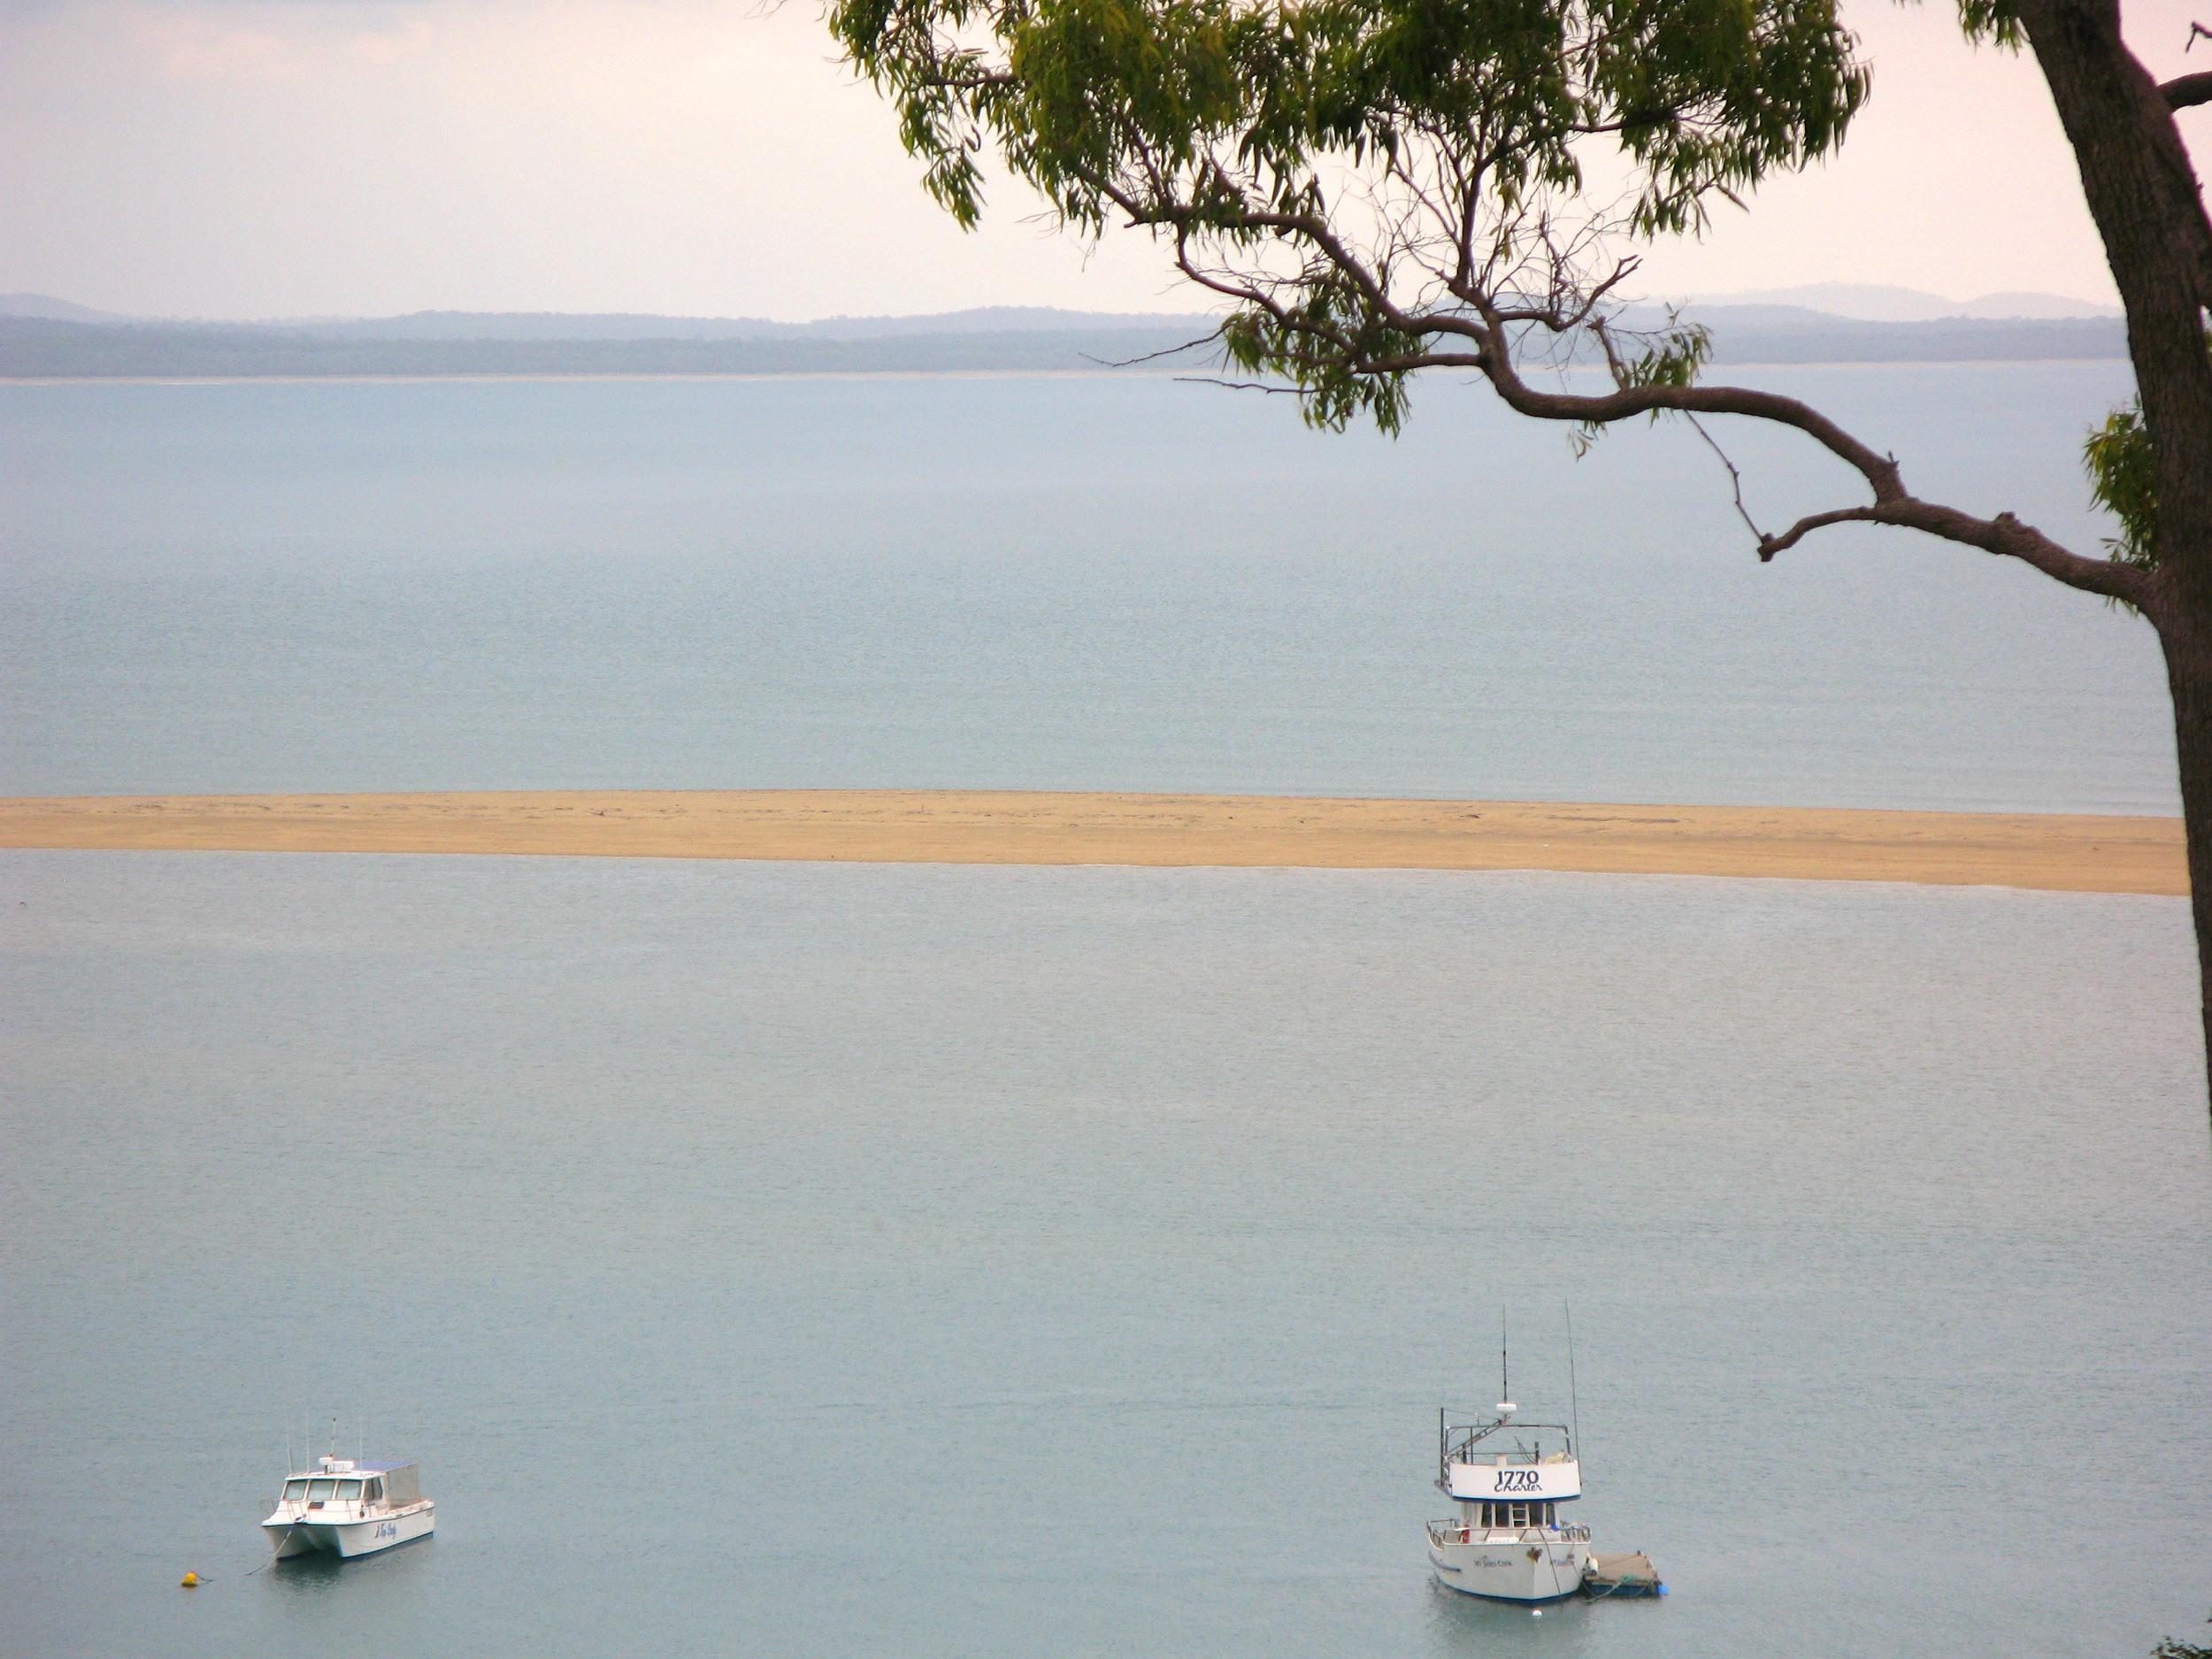 boats moored behind the sandbar at town of 1770, queensland